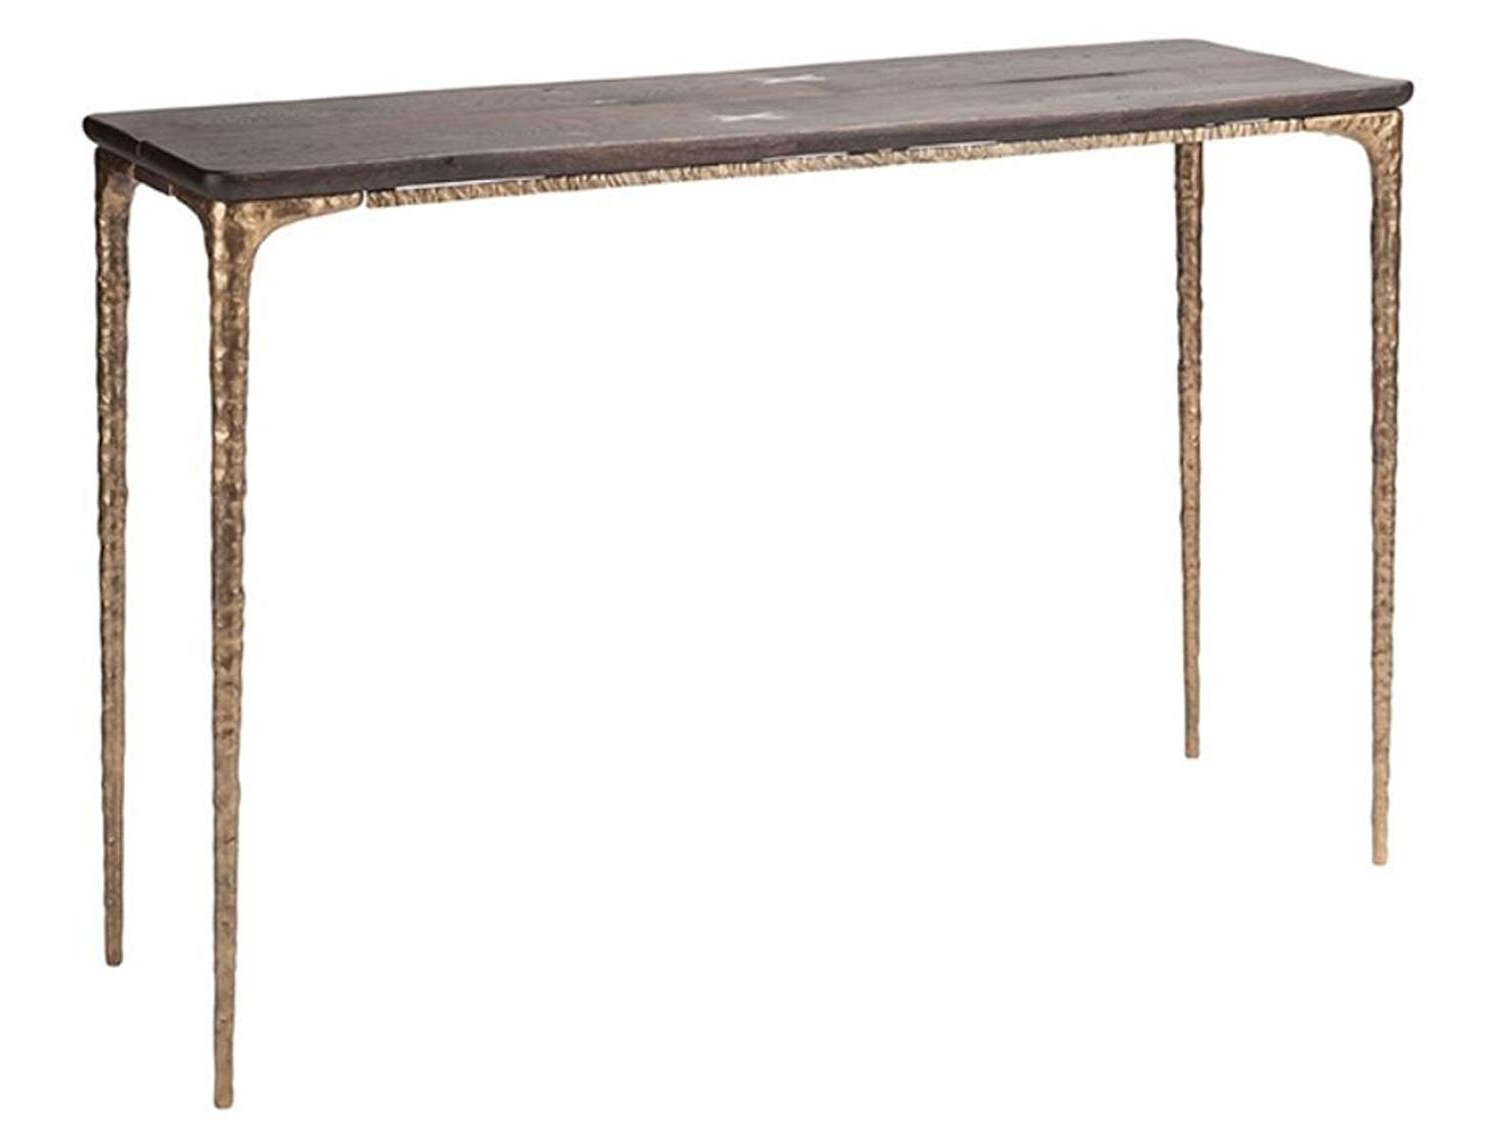 Trendy Dining Tables In Seared Oak With Brass Detail With Regard To Amazon: Kulu Console In Seared Oak And Bronze Legs (View 21 of 25)